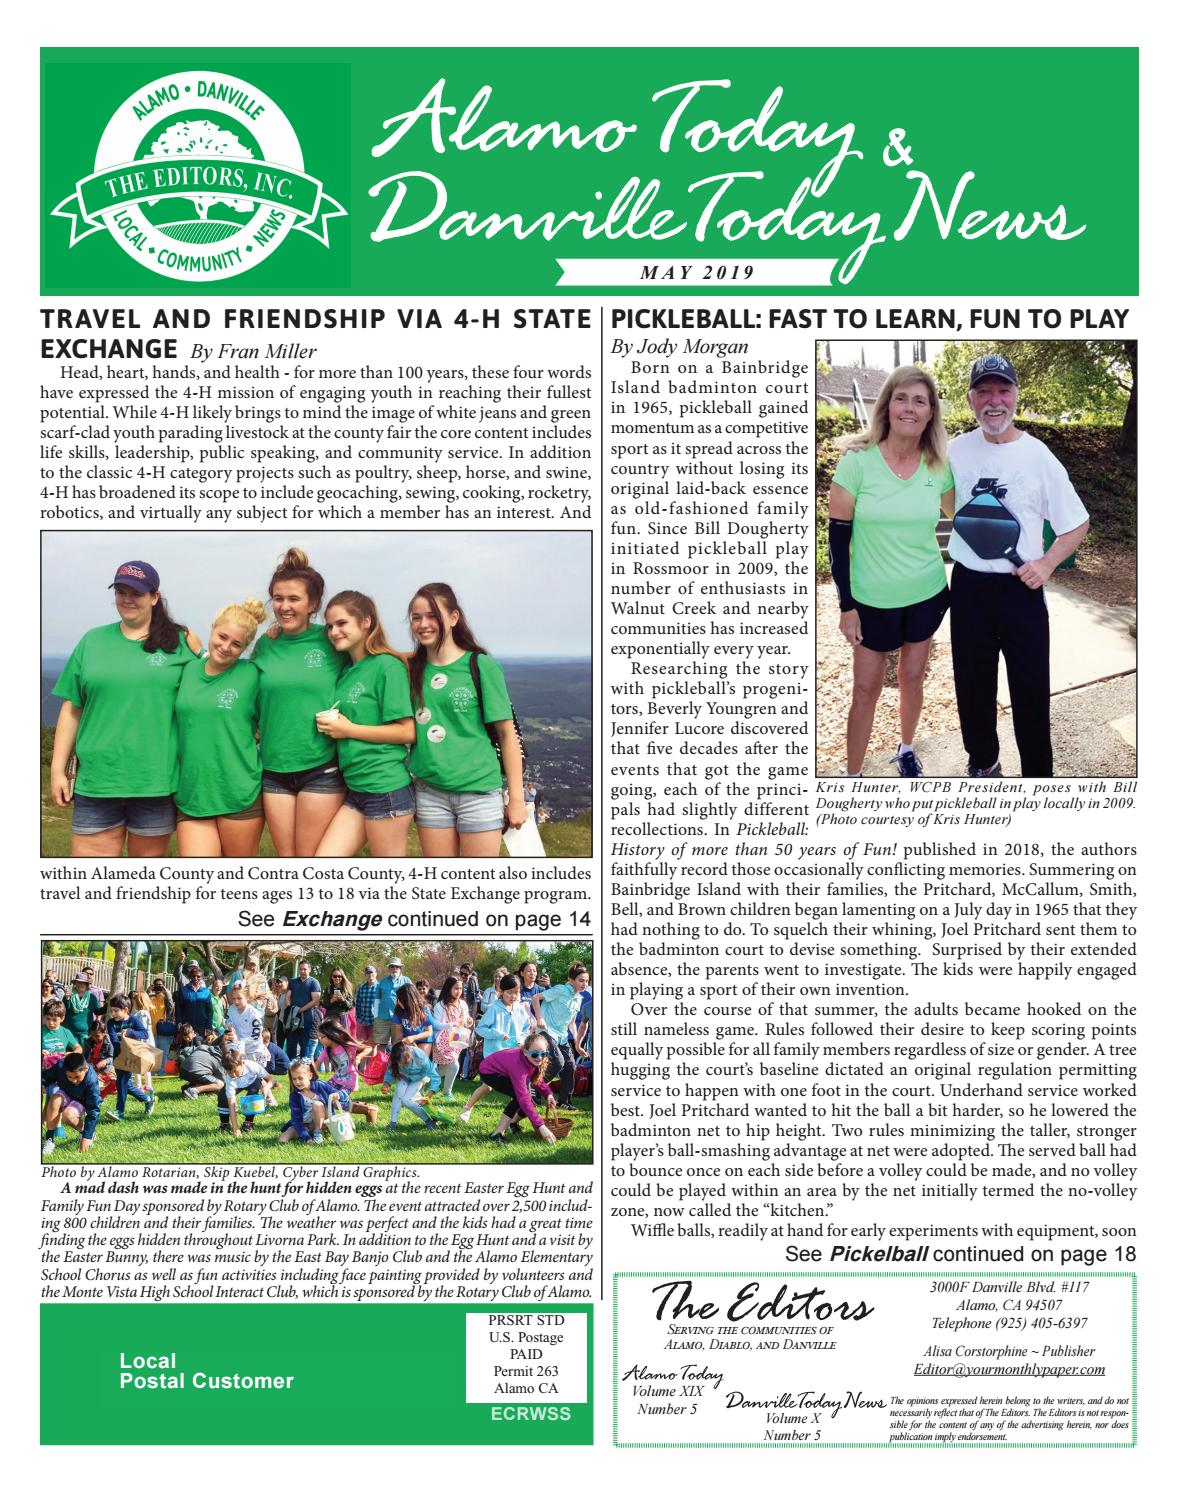 2019 MAY ~ Alamo Today & Danville Today News by The Editors, Inc - issuu